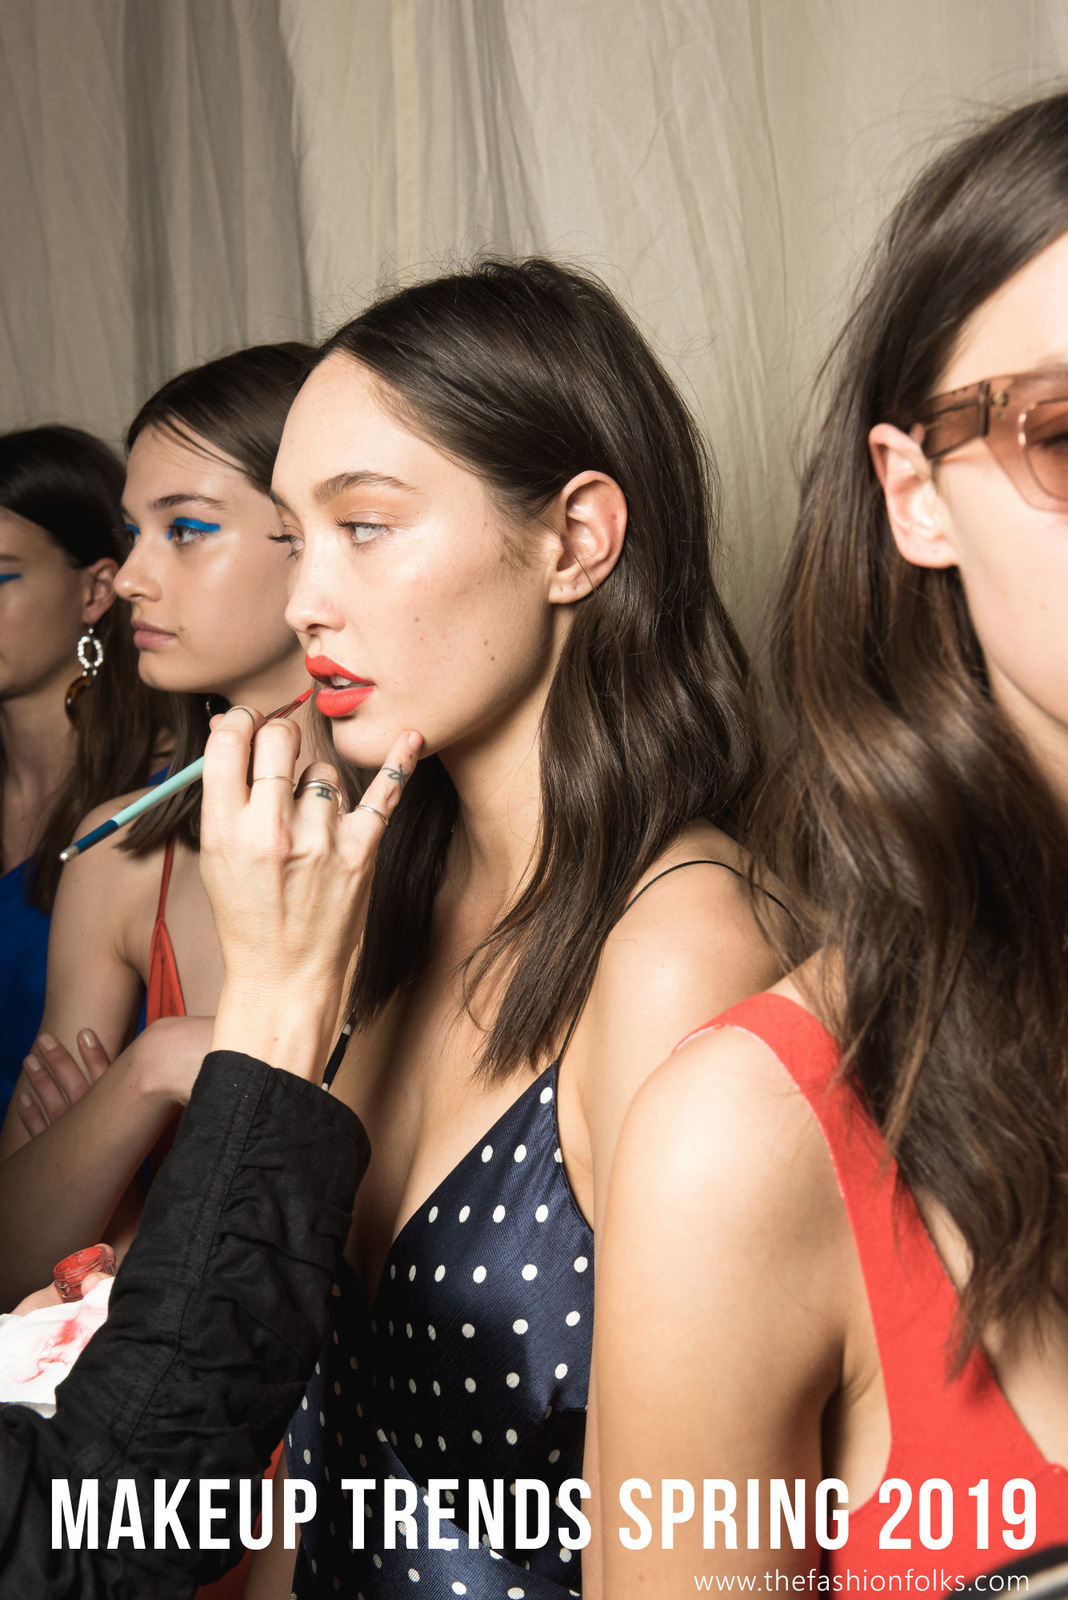 Preview: Makeup Trends Spring 2019 | The Fashion Folks